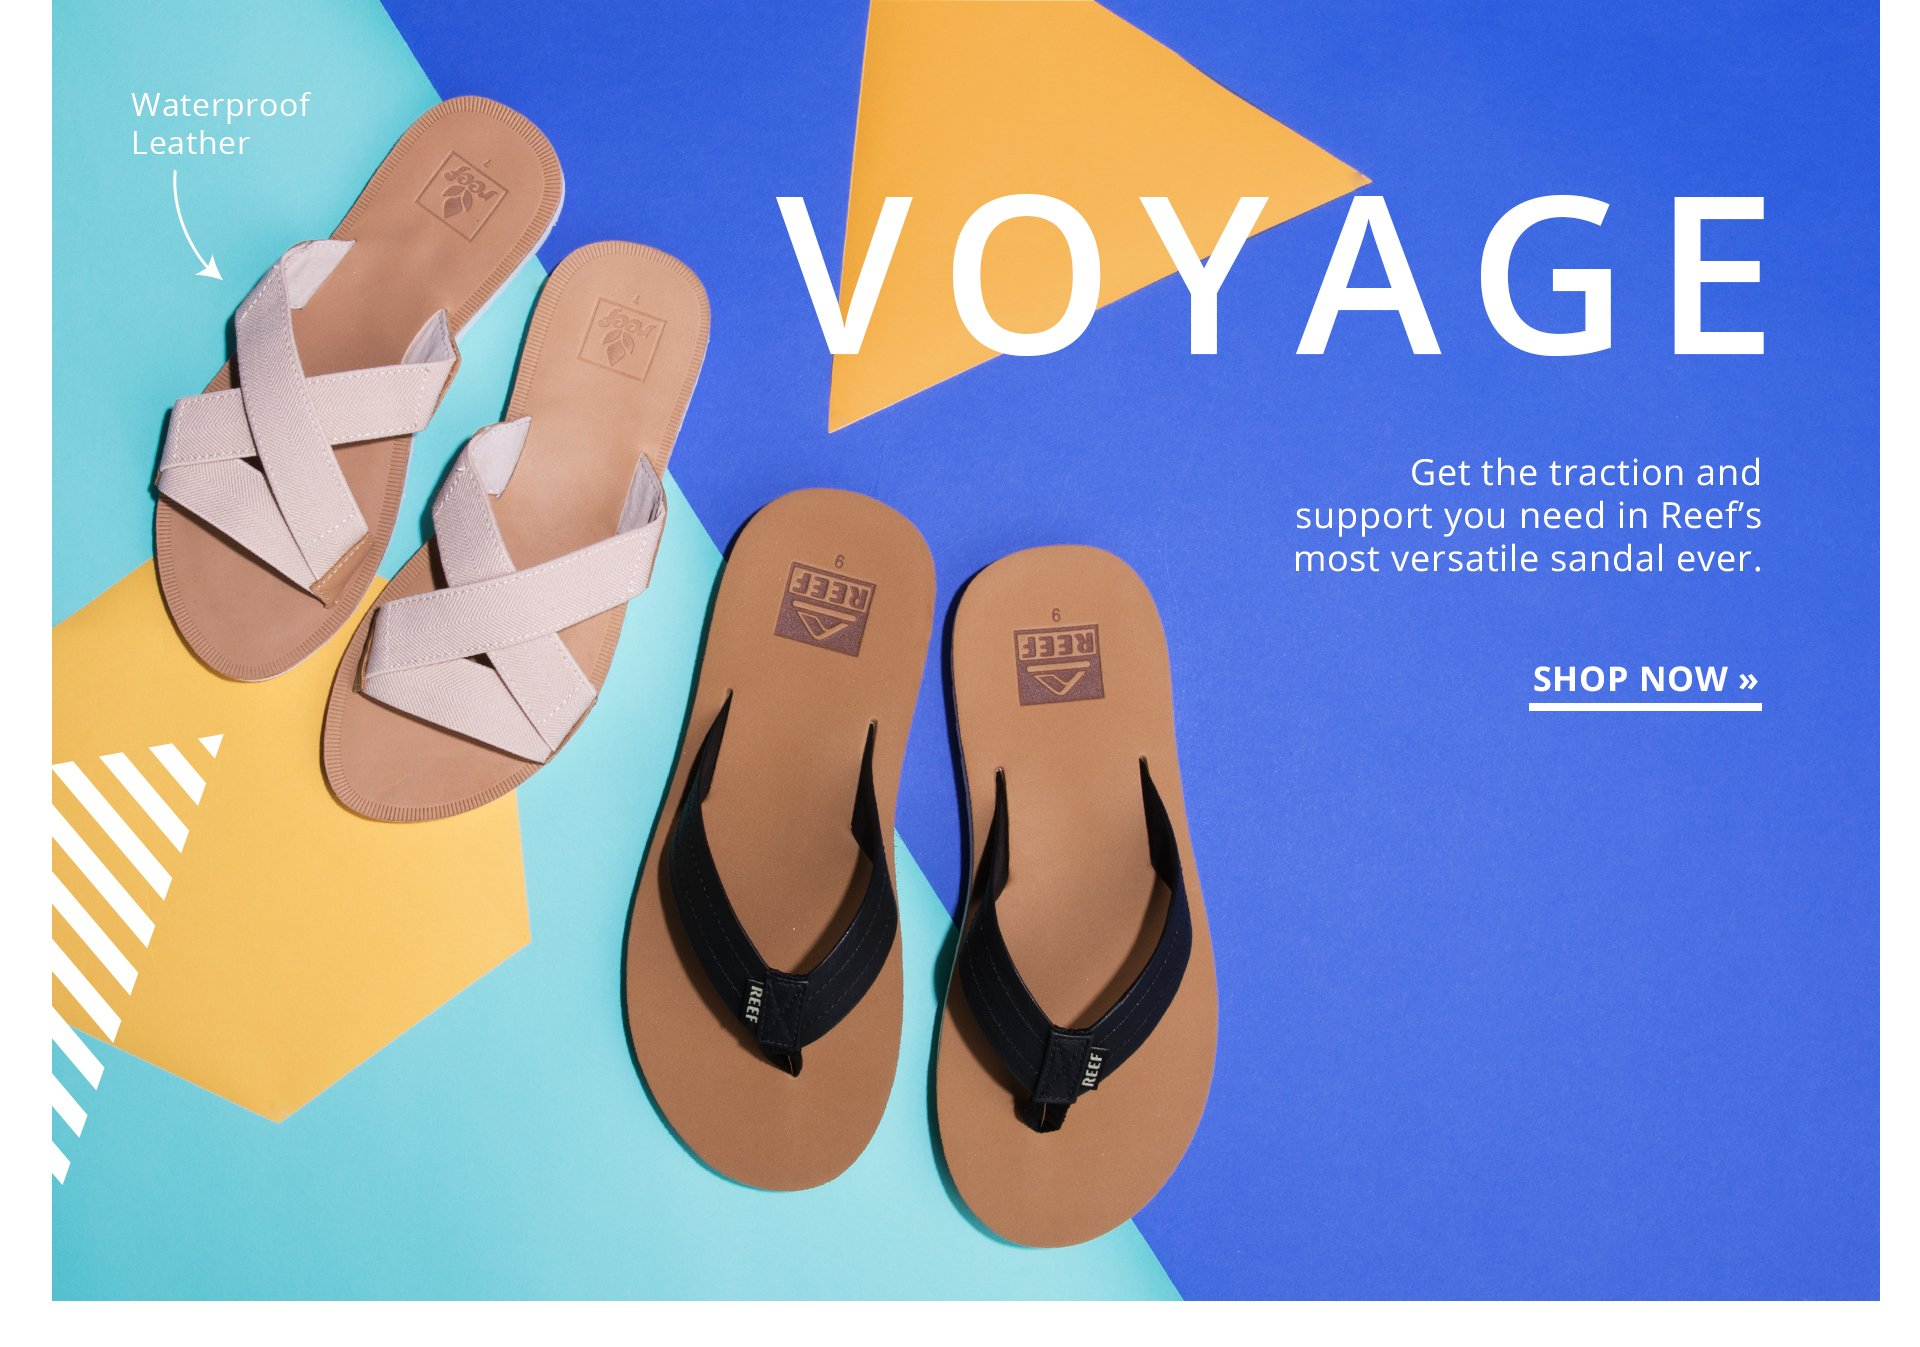 Voyage. Get the traction and support you need in Reef's most versatile sandal ever. Shop Now